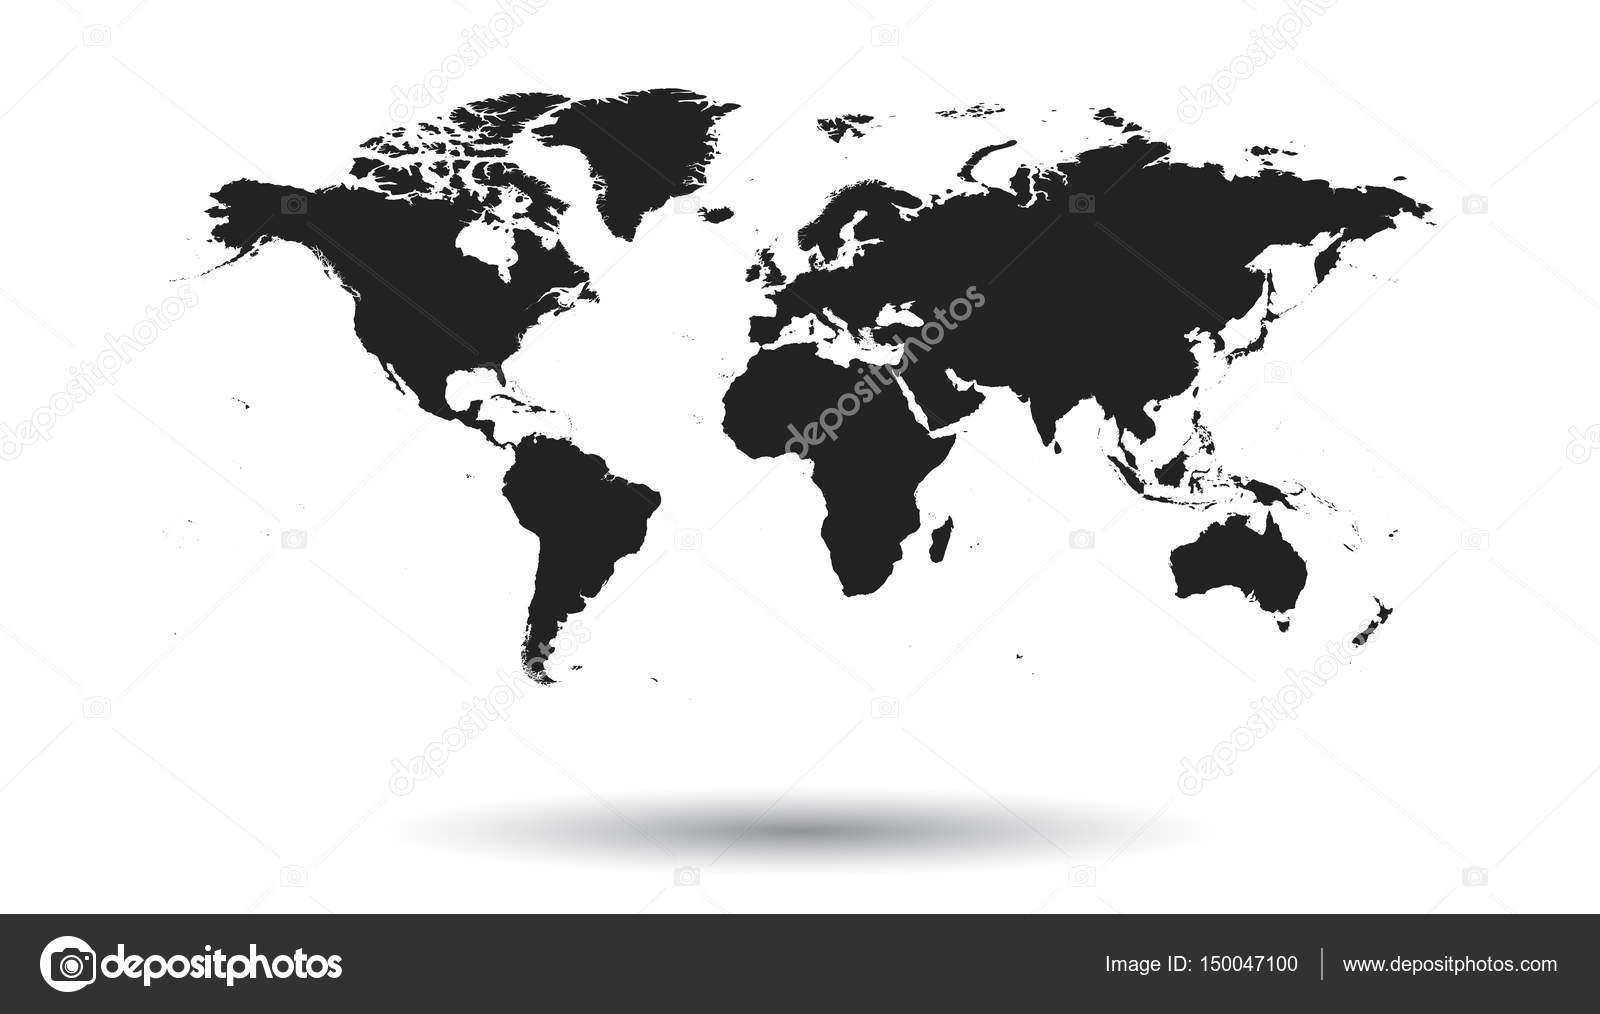 Blank black political world map isolated on white background blank black political world map isolated on white background worldmap vector template for website infographics design flat earth world map illustration gumiabroncs Gallery